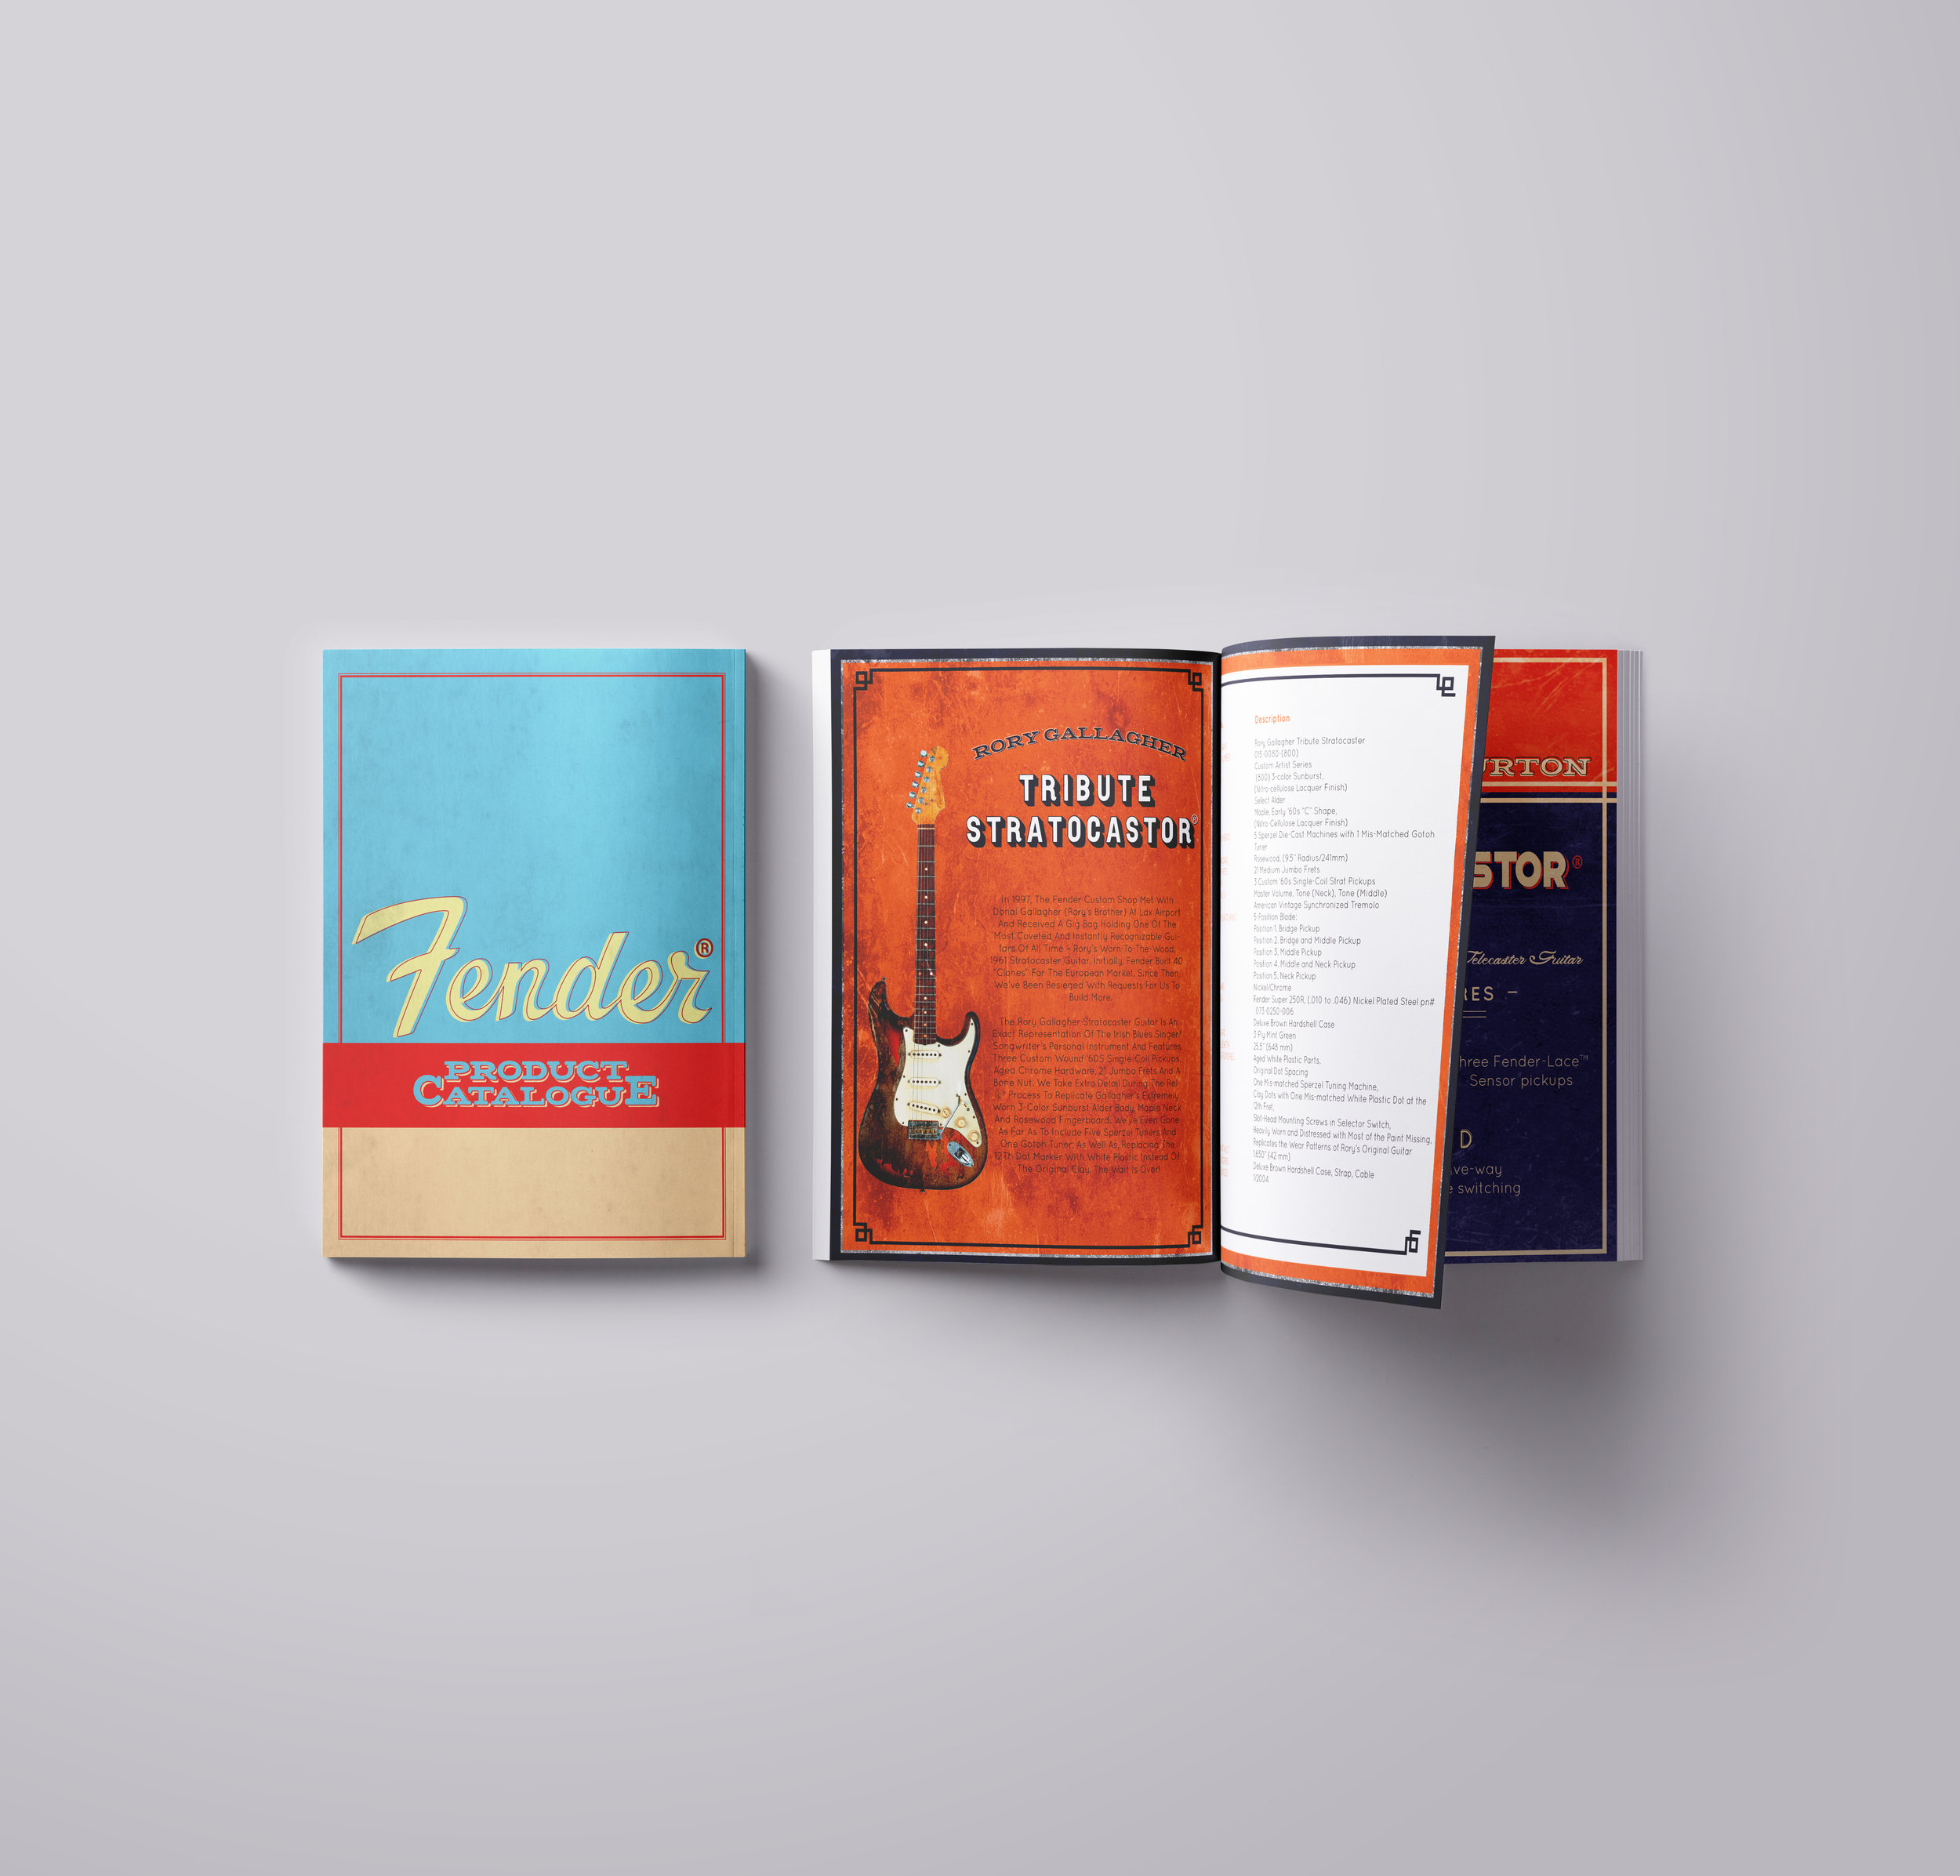 product catalogue - Mock product catalogue for Fender Guitars. Inspired by vintage advertisements and packaging design.